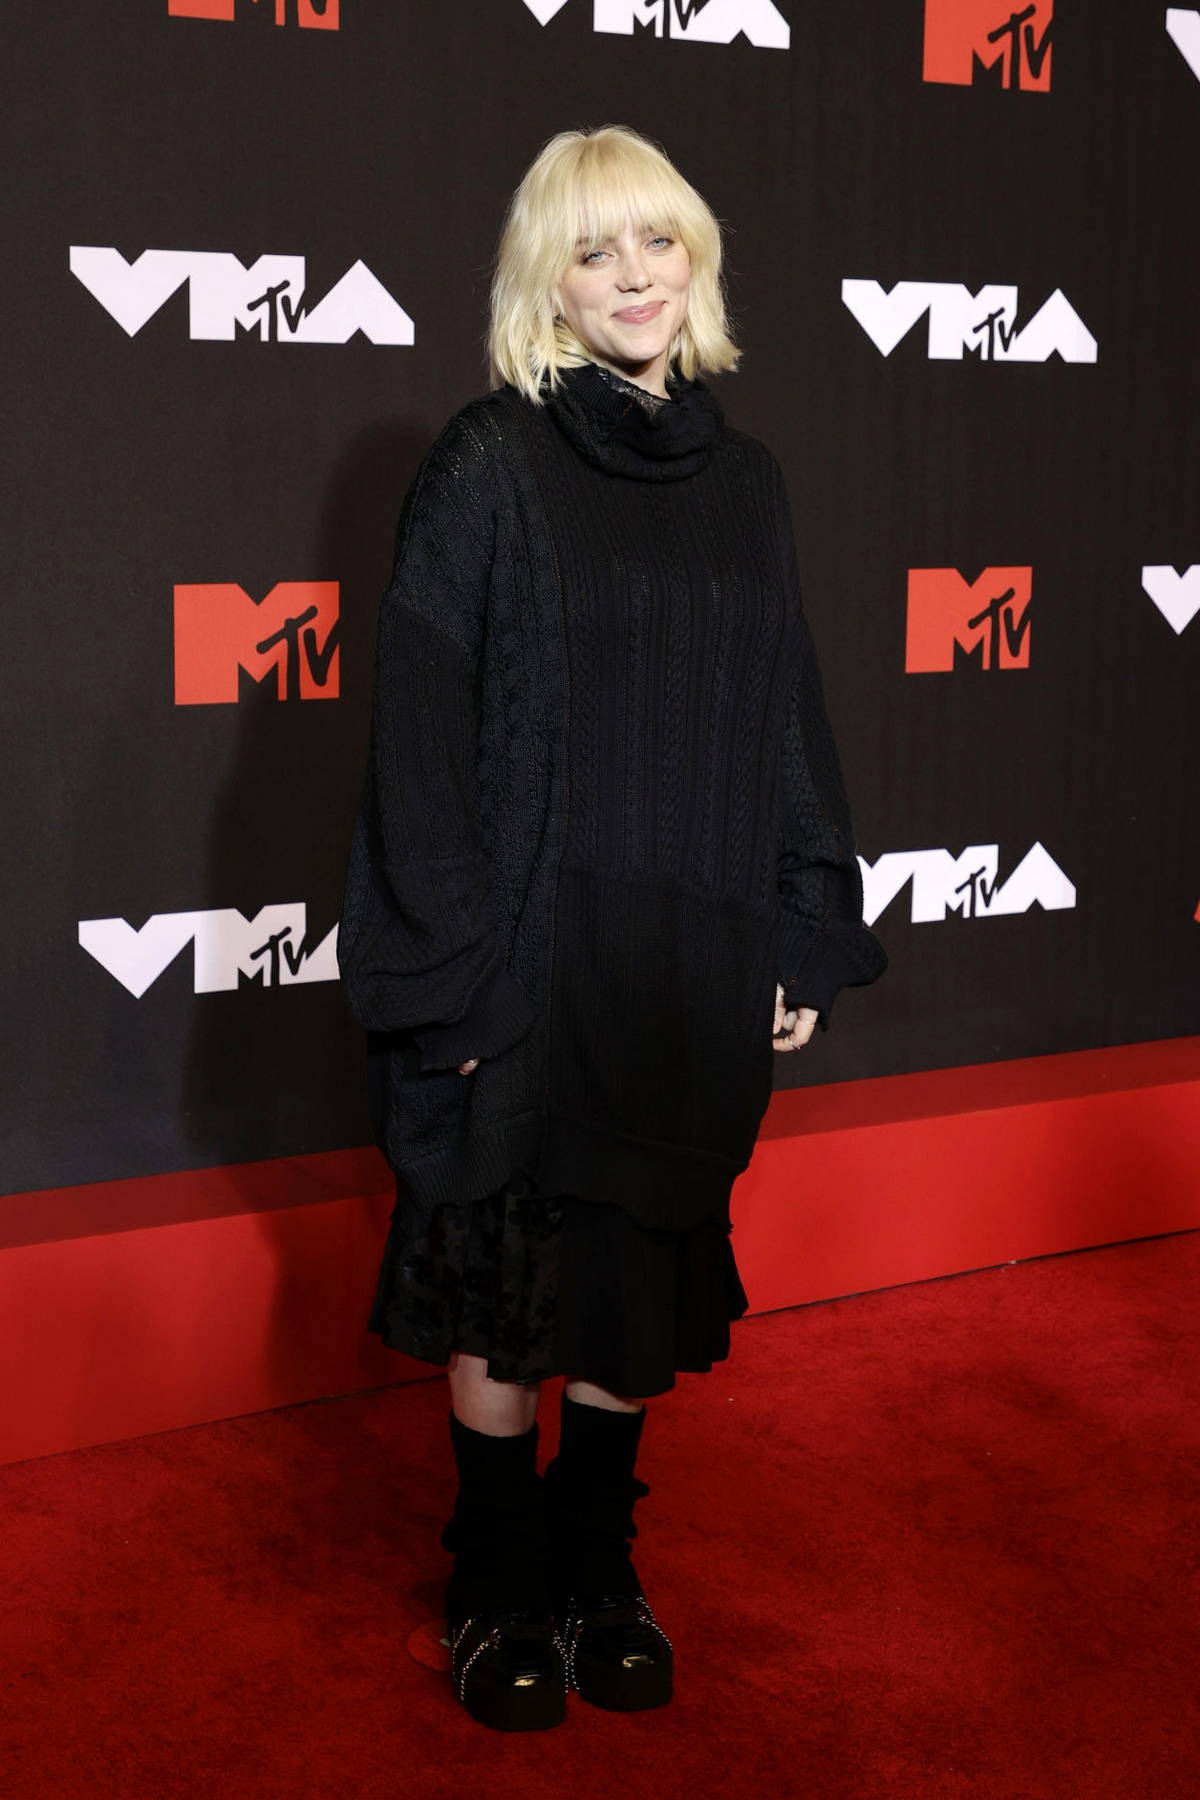 Billie Eilish attends the 2021 MTV Video Music Awards at Barclays Center in Brooklyn, New York City